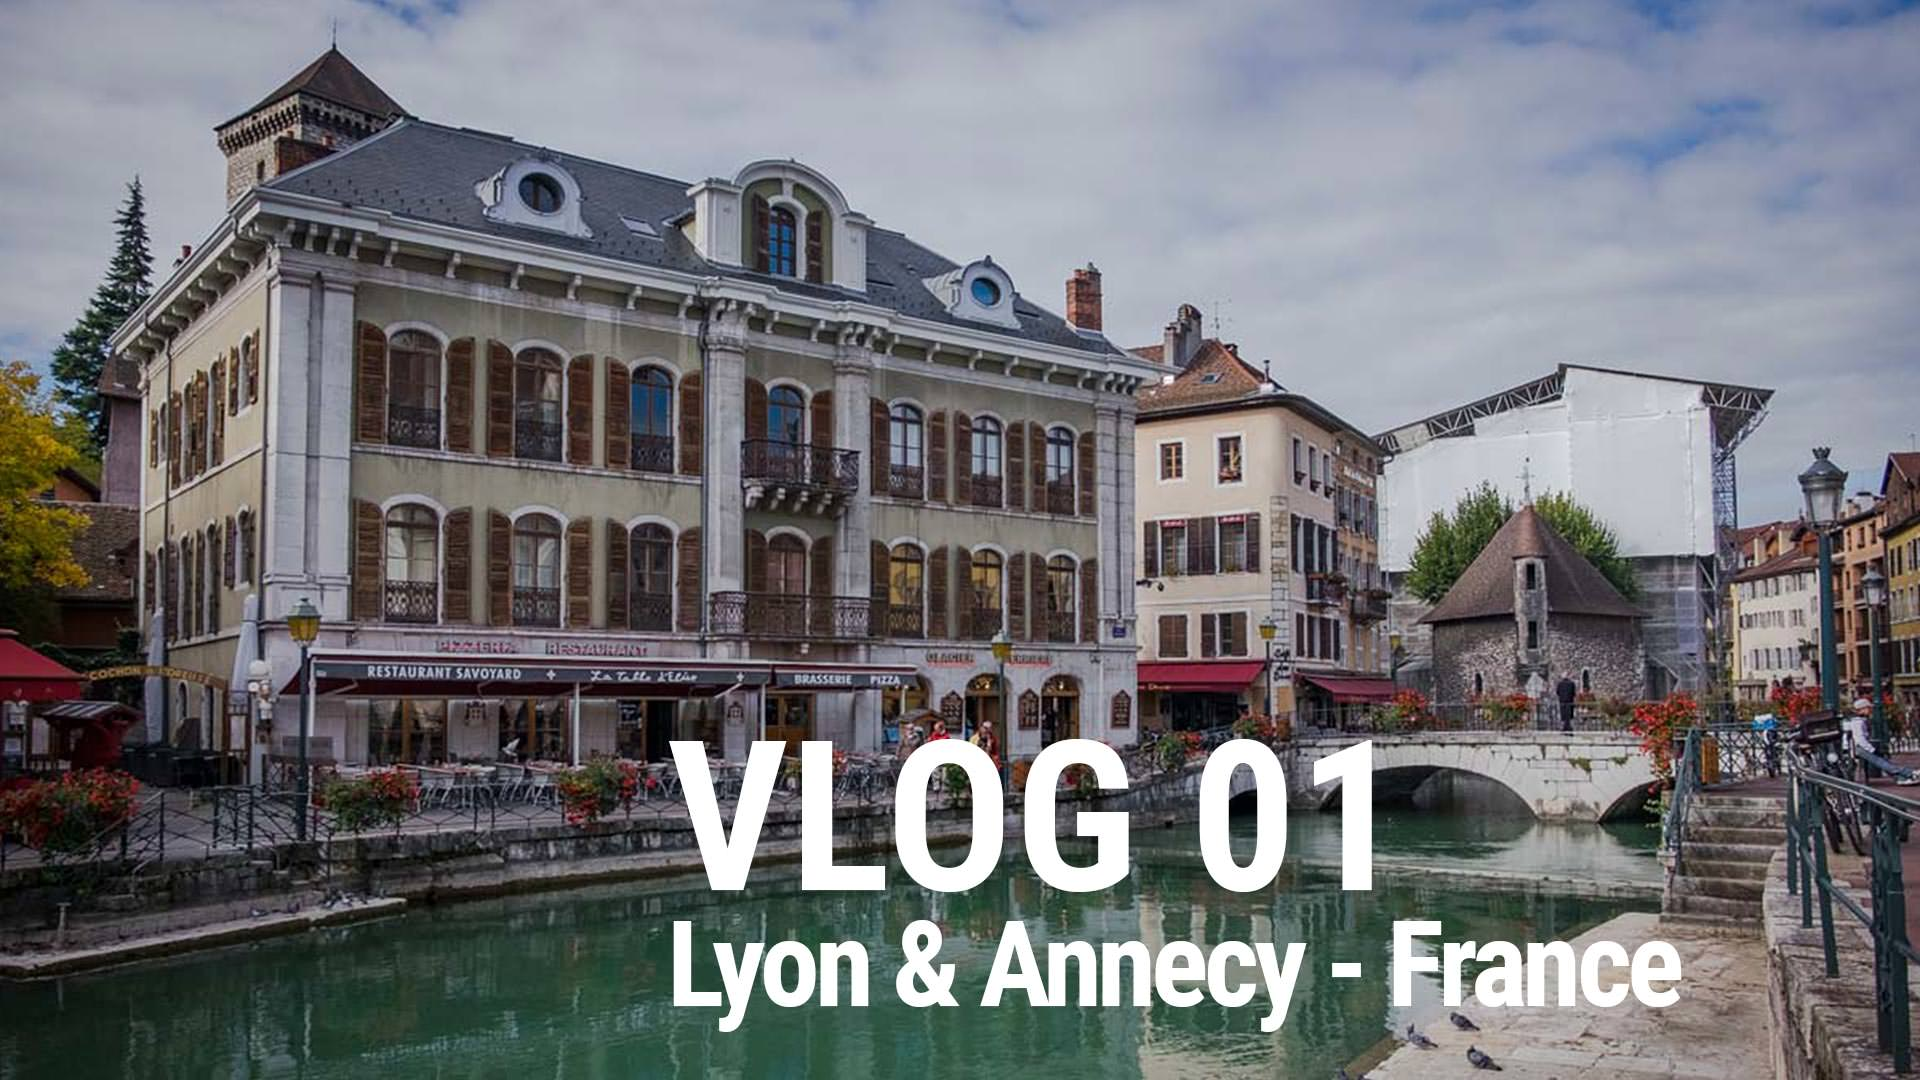 vlog 01 lyon annecy france photo insomnia. Black Bedroom Furniture Sets. Home Design Ideas